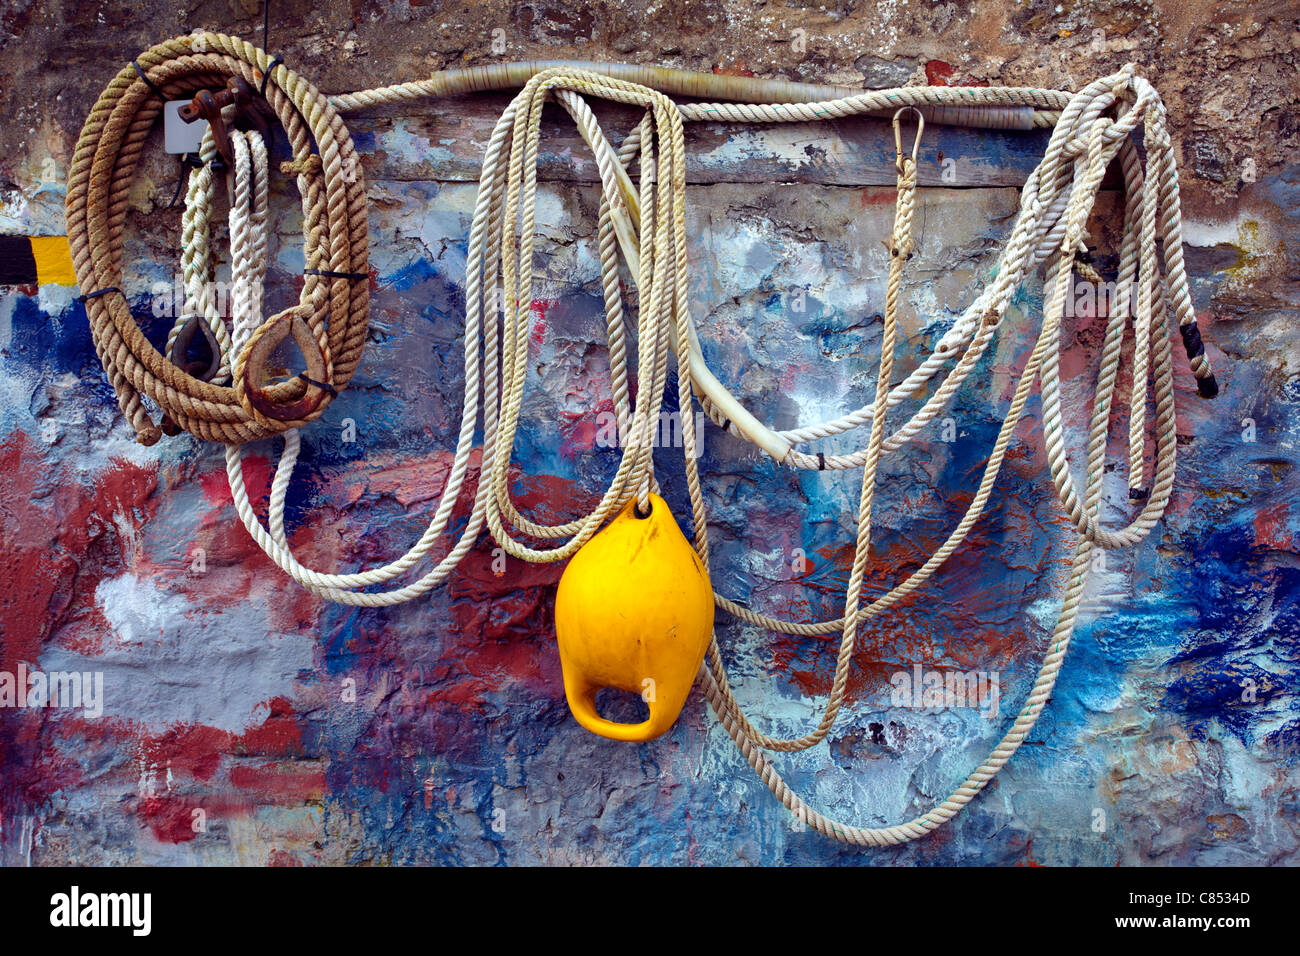 Rope and buoy hanging on a Welsh boatyard wall, splashed with various coloured paints. - Stock Image